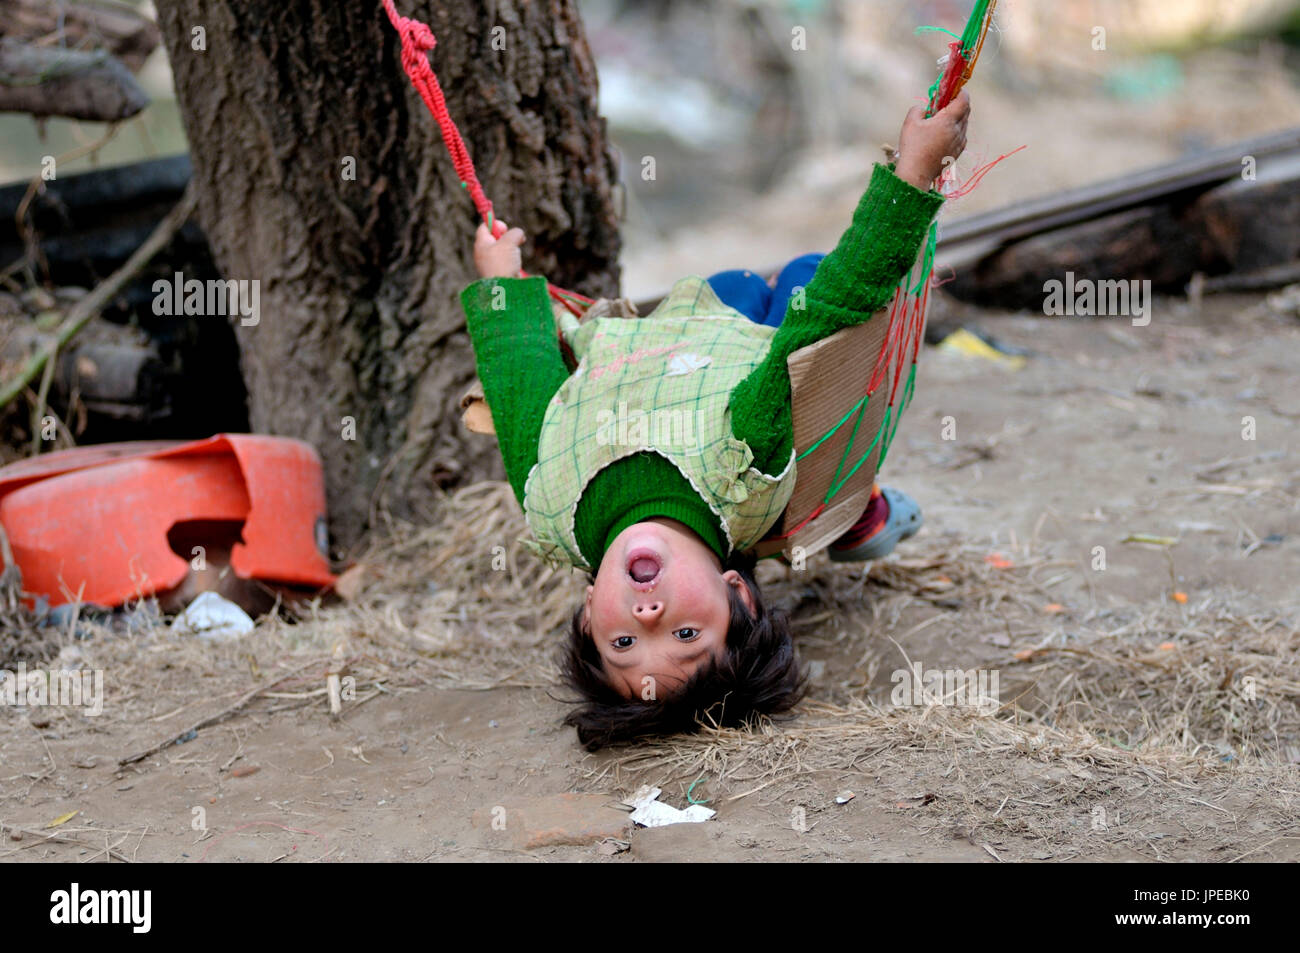 A Nepali child playing. Nepal - Stock Image